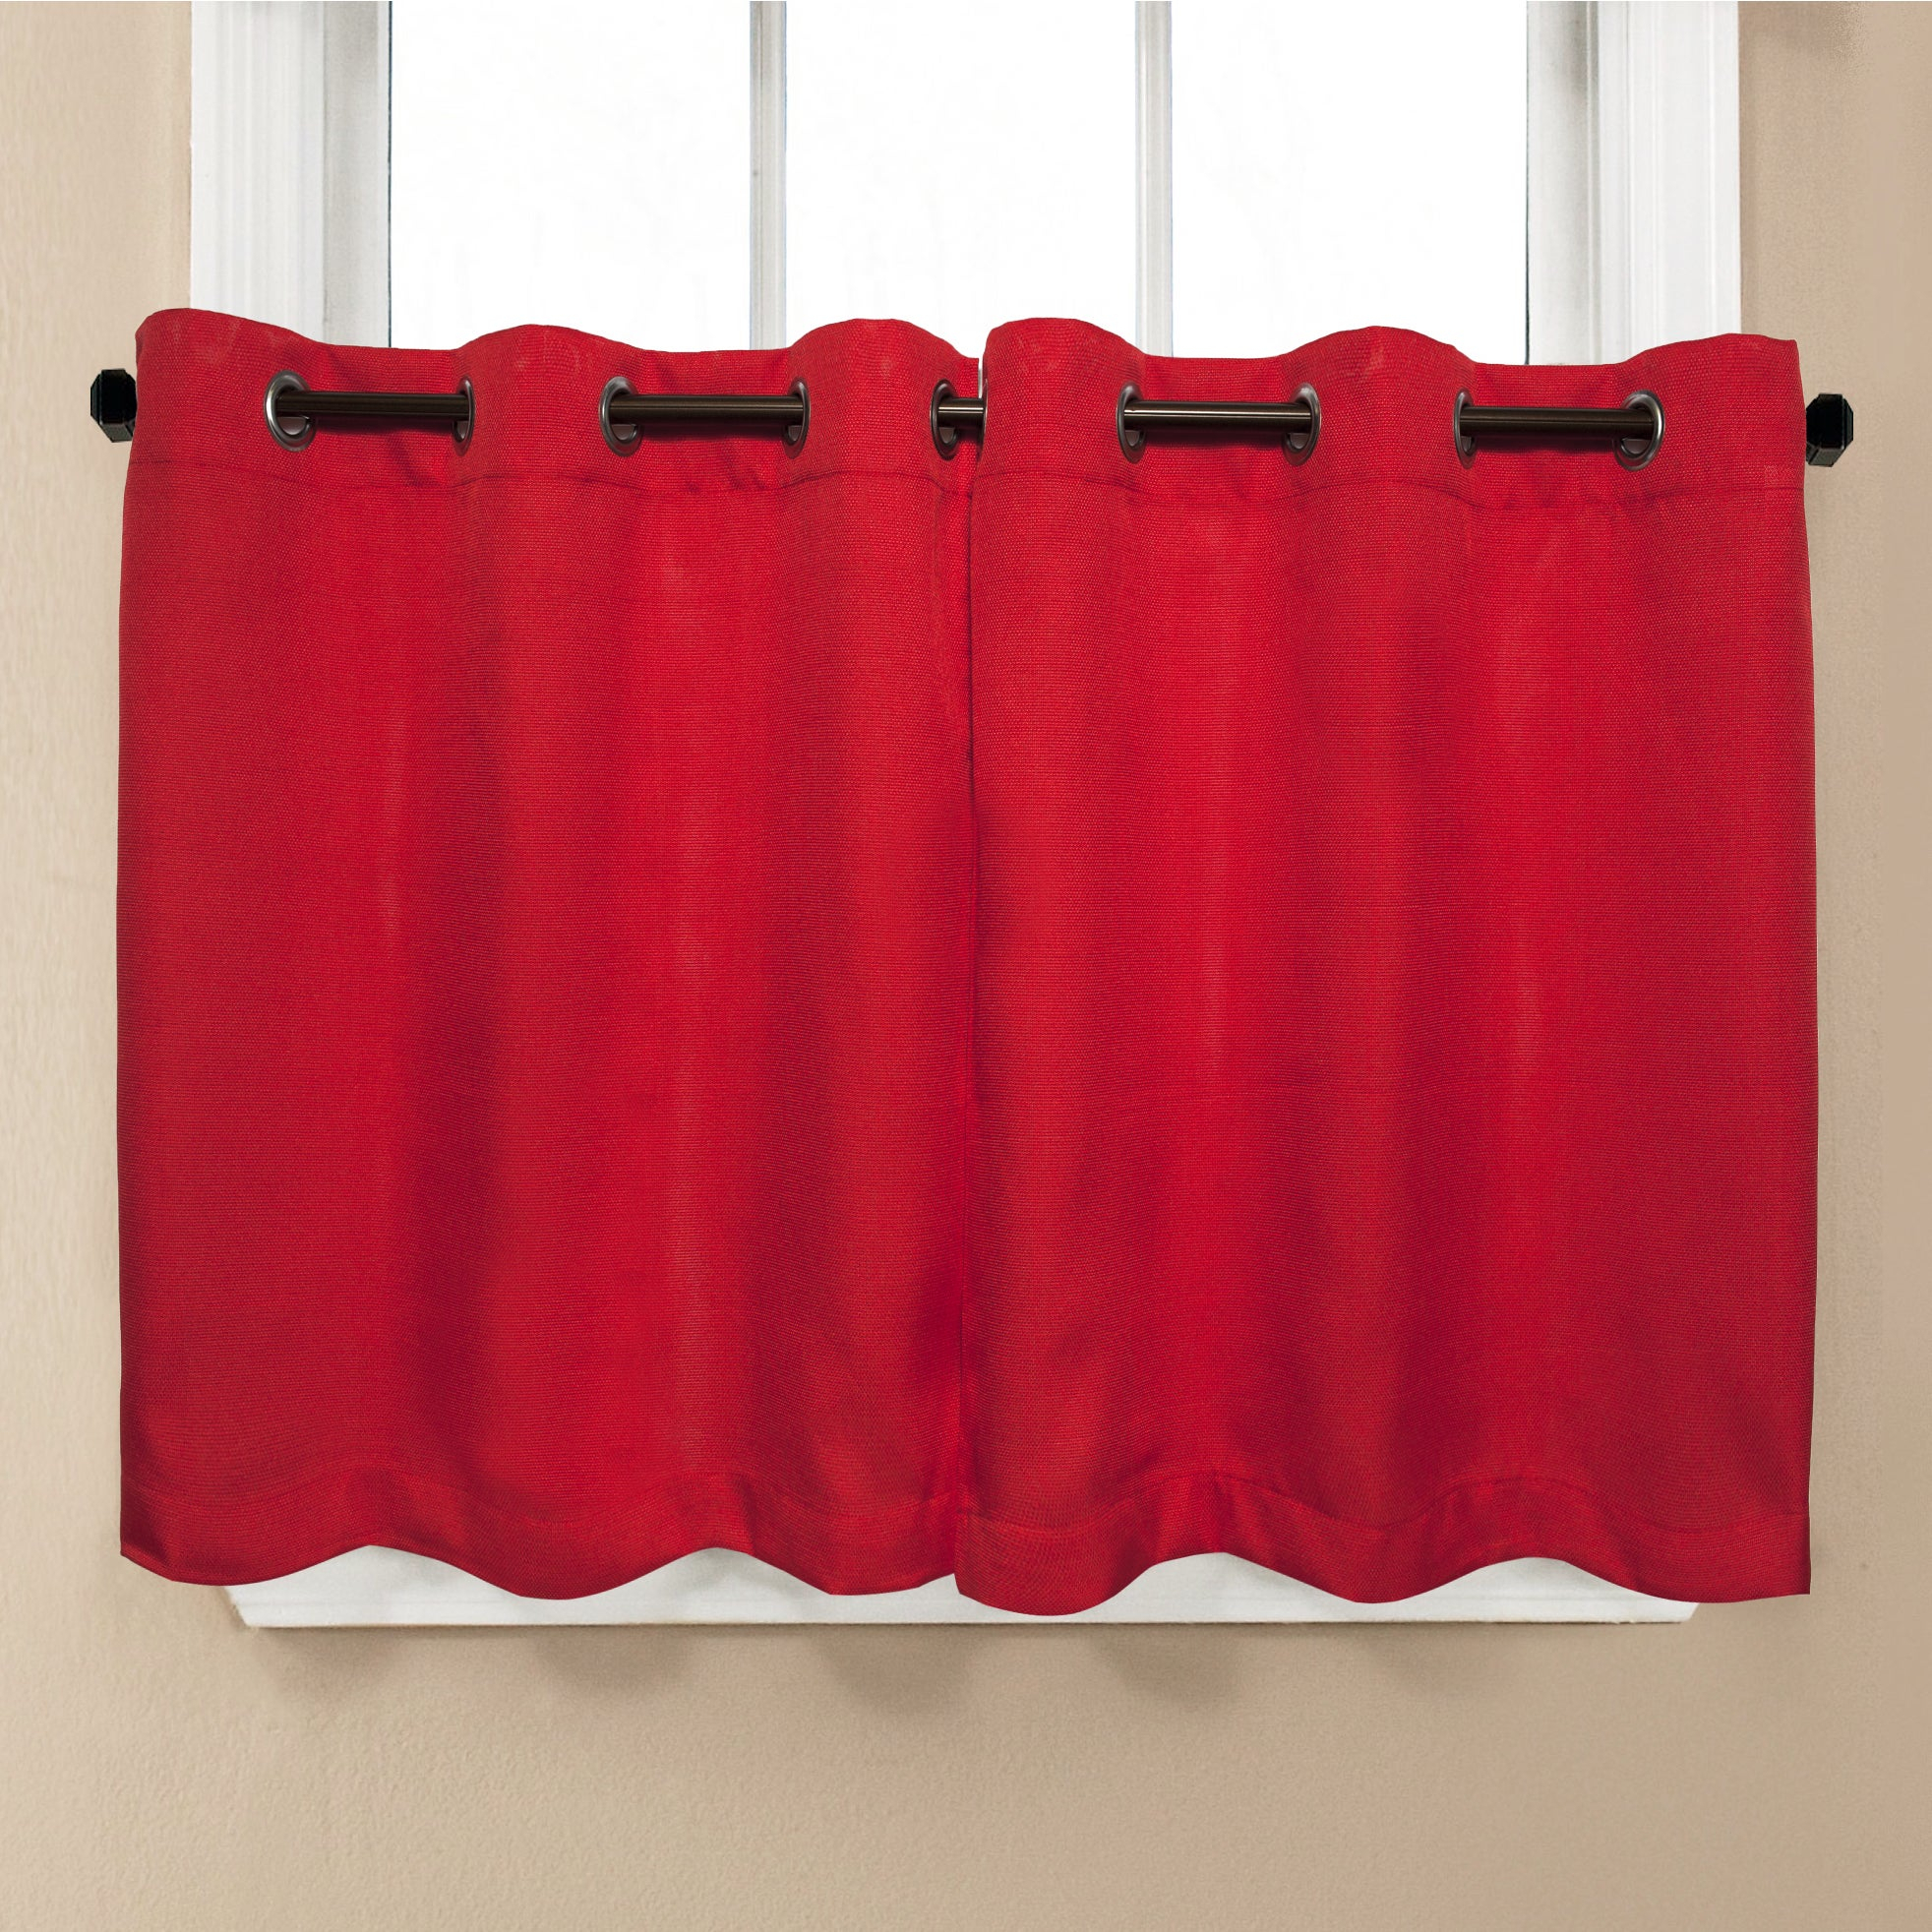 Modern Subtle Texture Solid Red Kitchen Curtain Parts With Grommets Tier And Valance Options In Modern Subtle Texture Solid White Kitchen Curtain Parts With Grommets Tier And Valance Options (View 6 of 20)